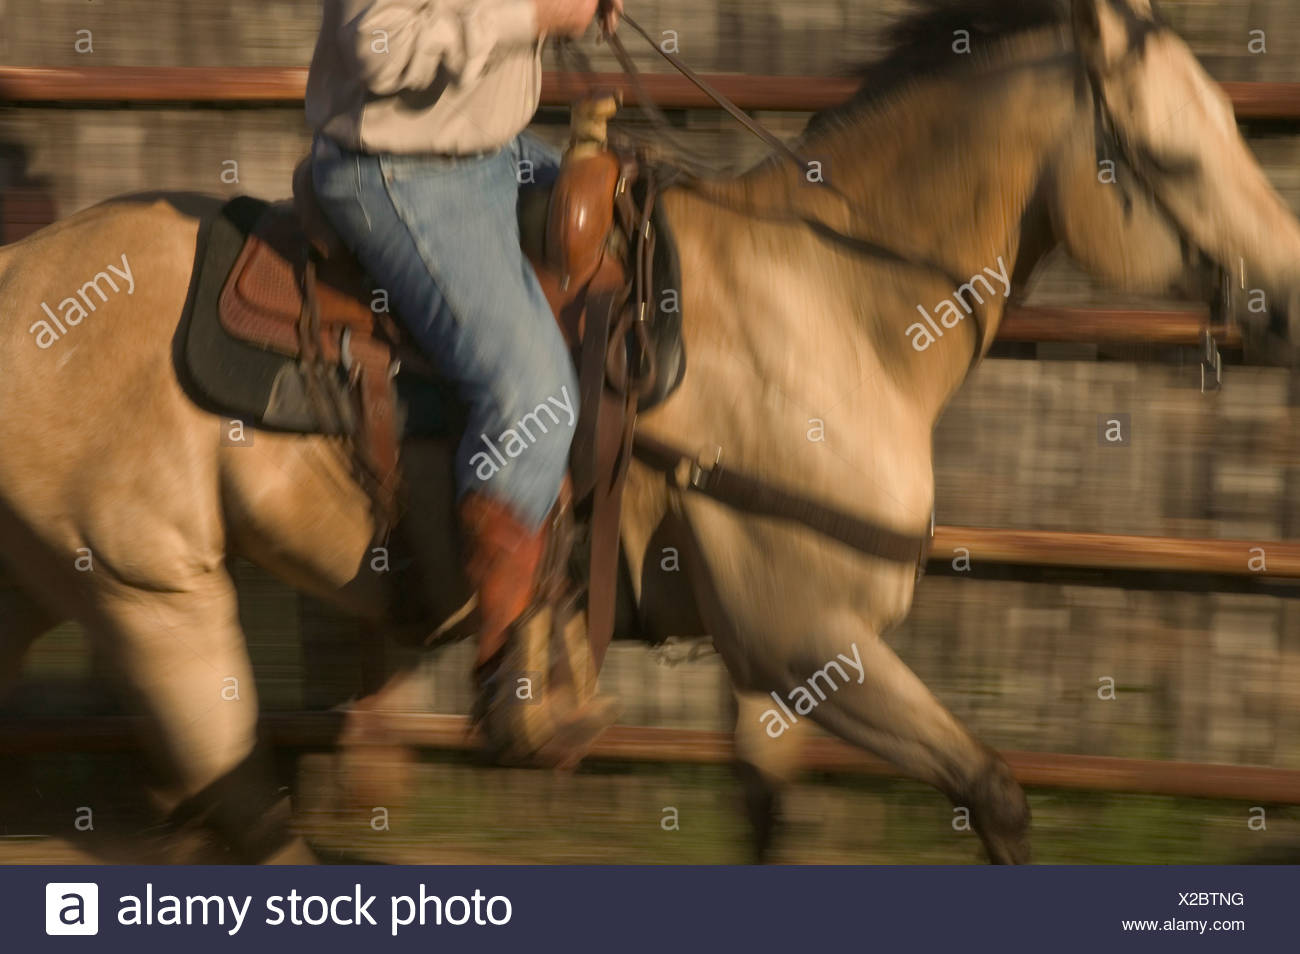 A Texan cowboy takes his horse out for a ride on the ranch. Stock Photo